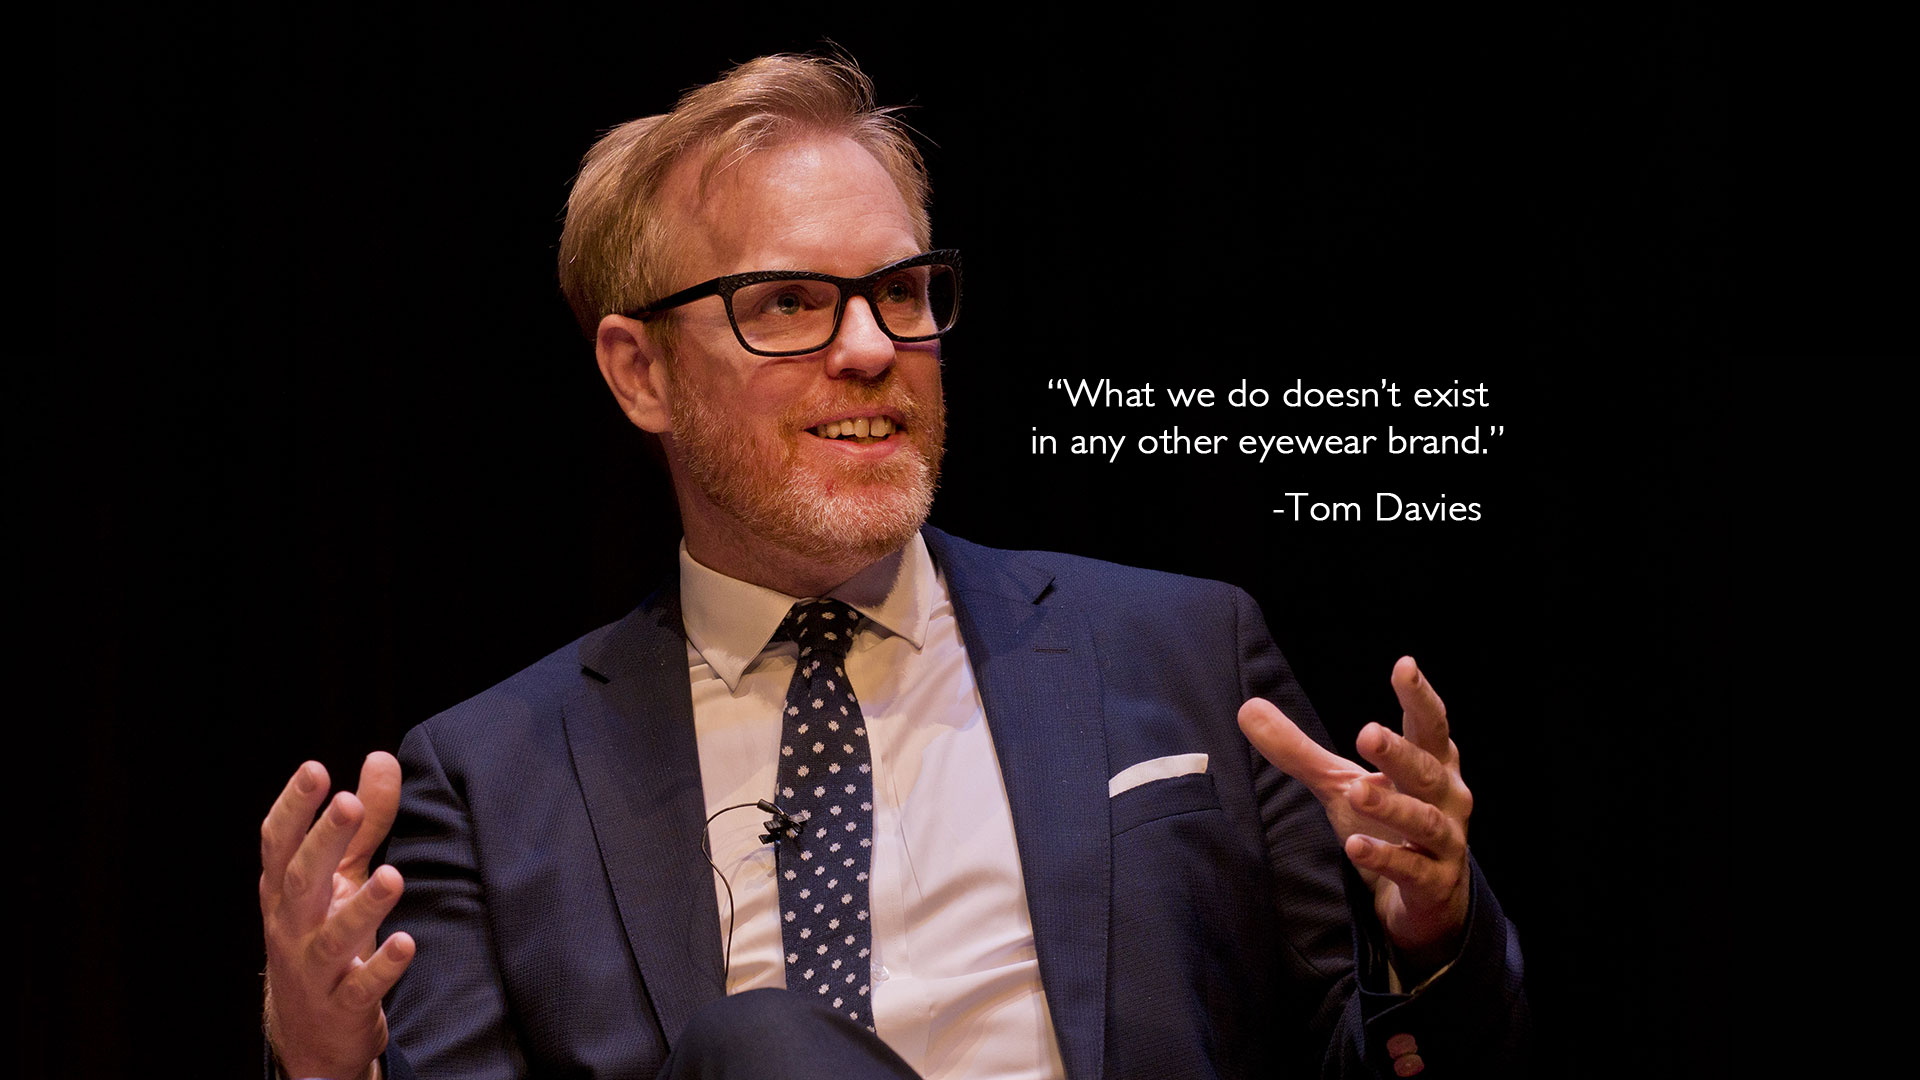 British eyewear designer Tom Davies talking about his brand and bespoke service